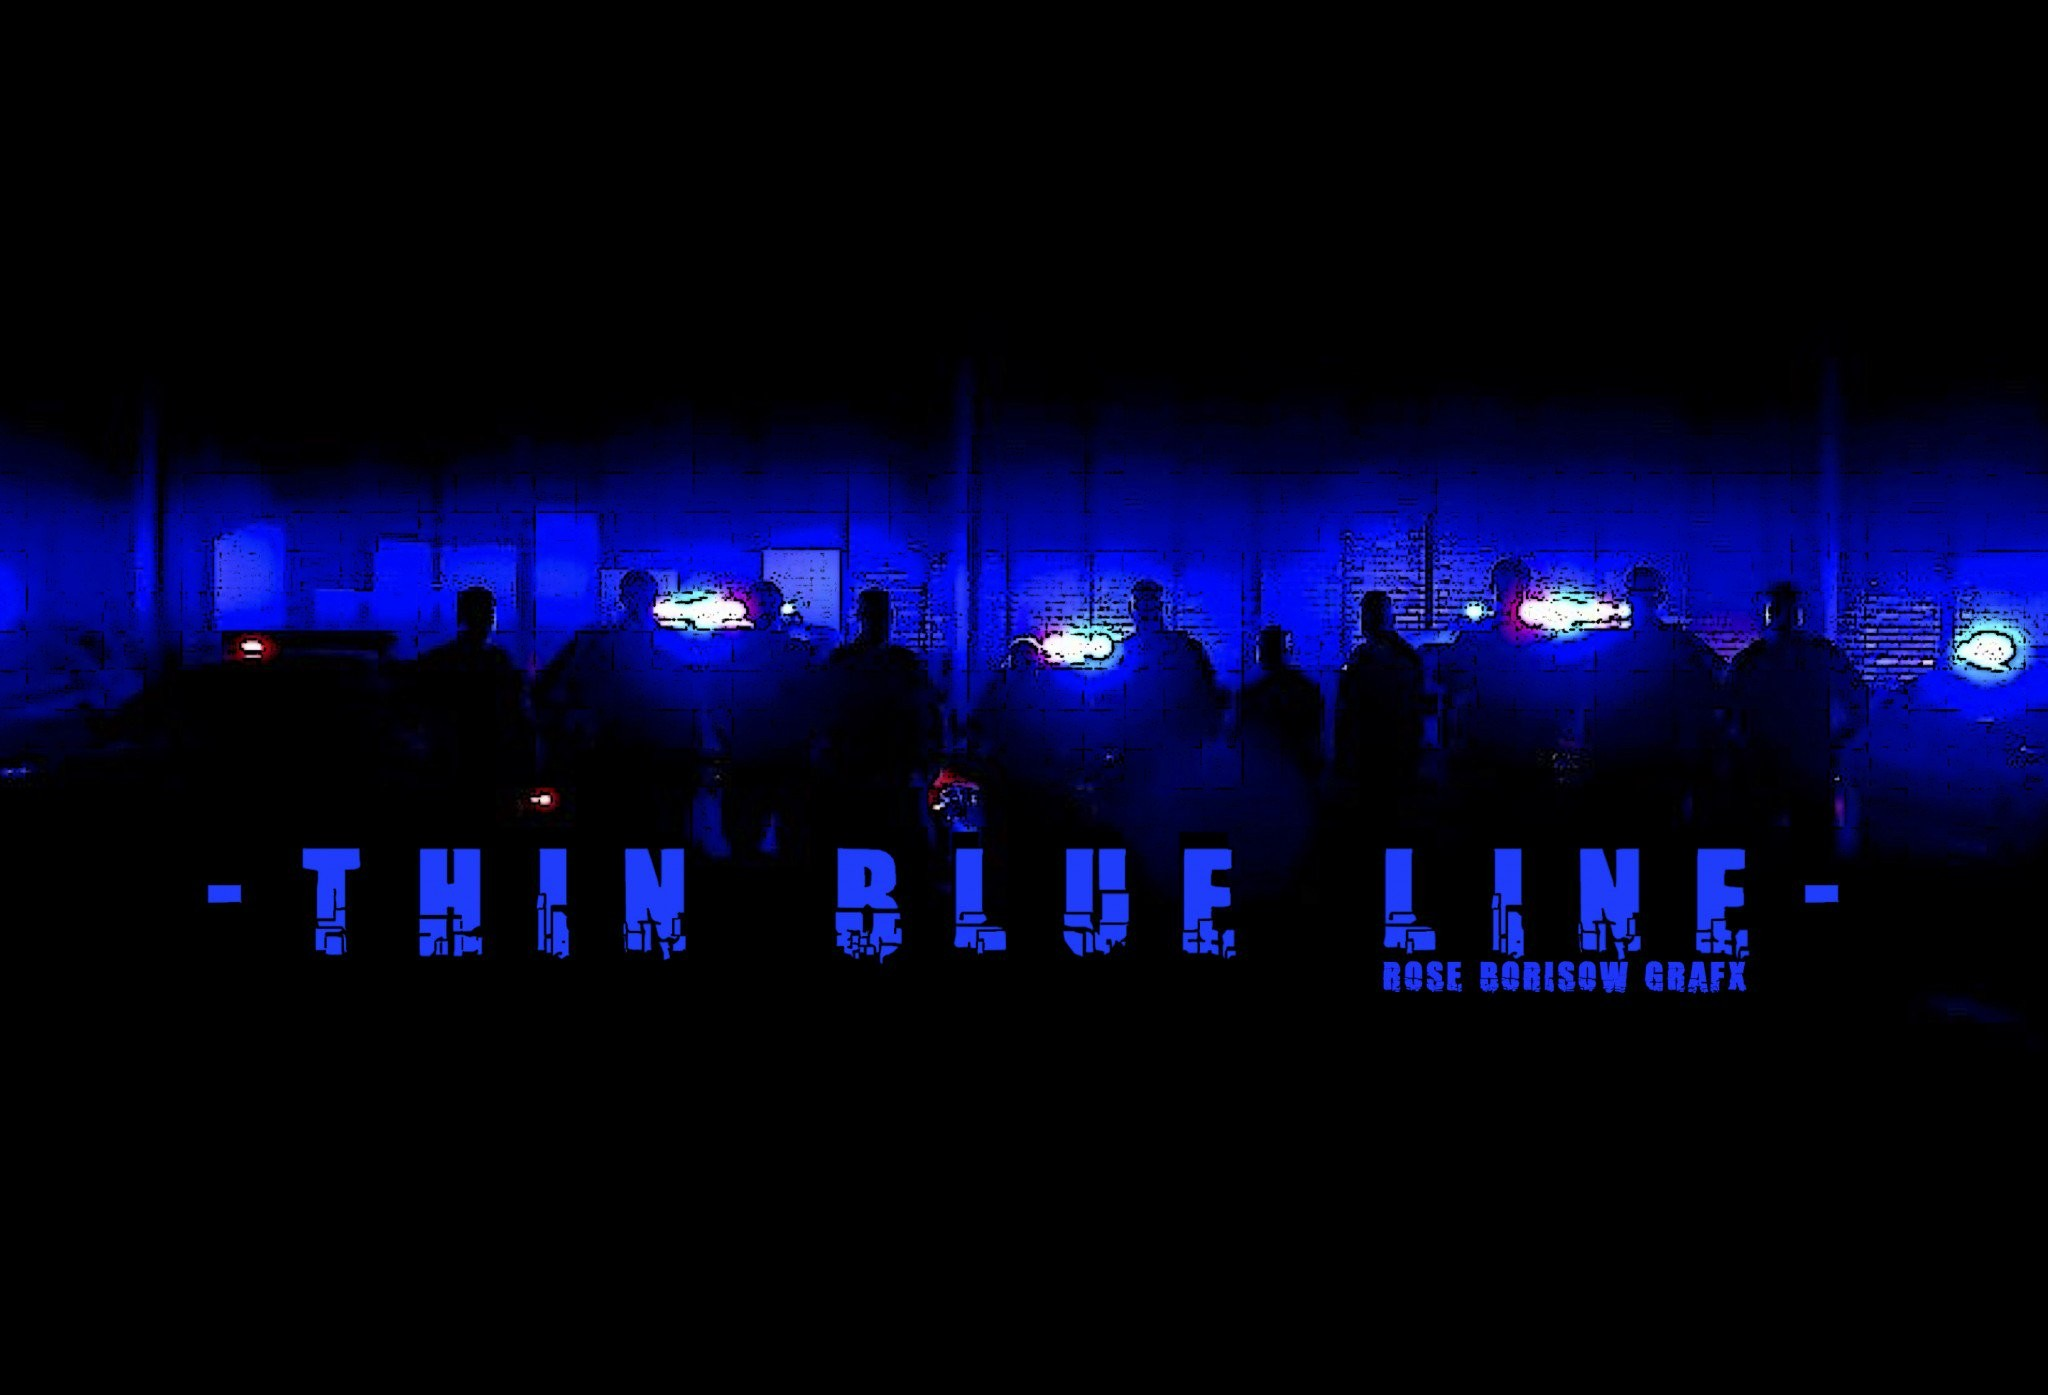 2048x1395 this is my thin blue line law enforcement today thin blue line wallpaper for android